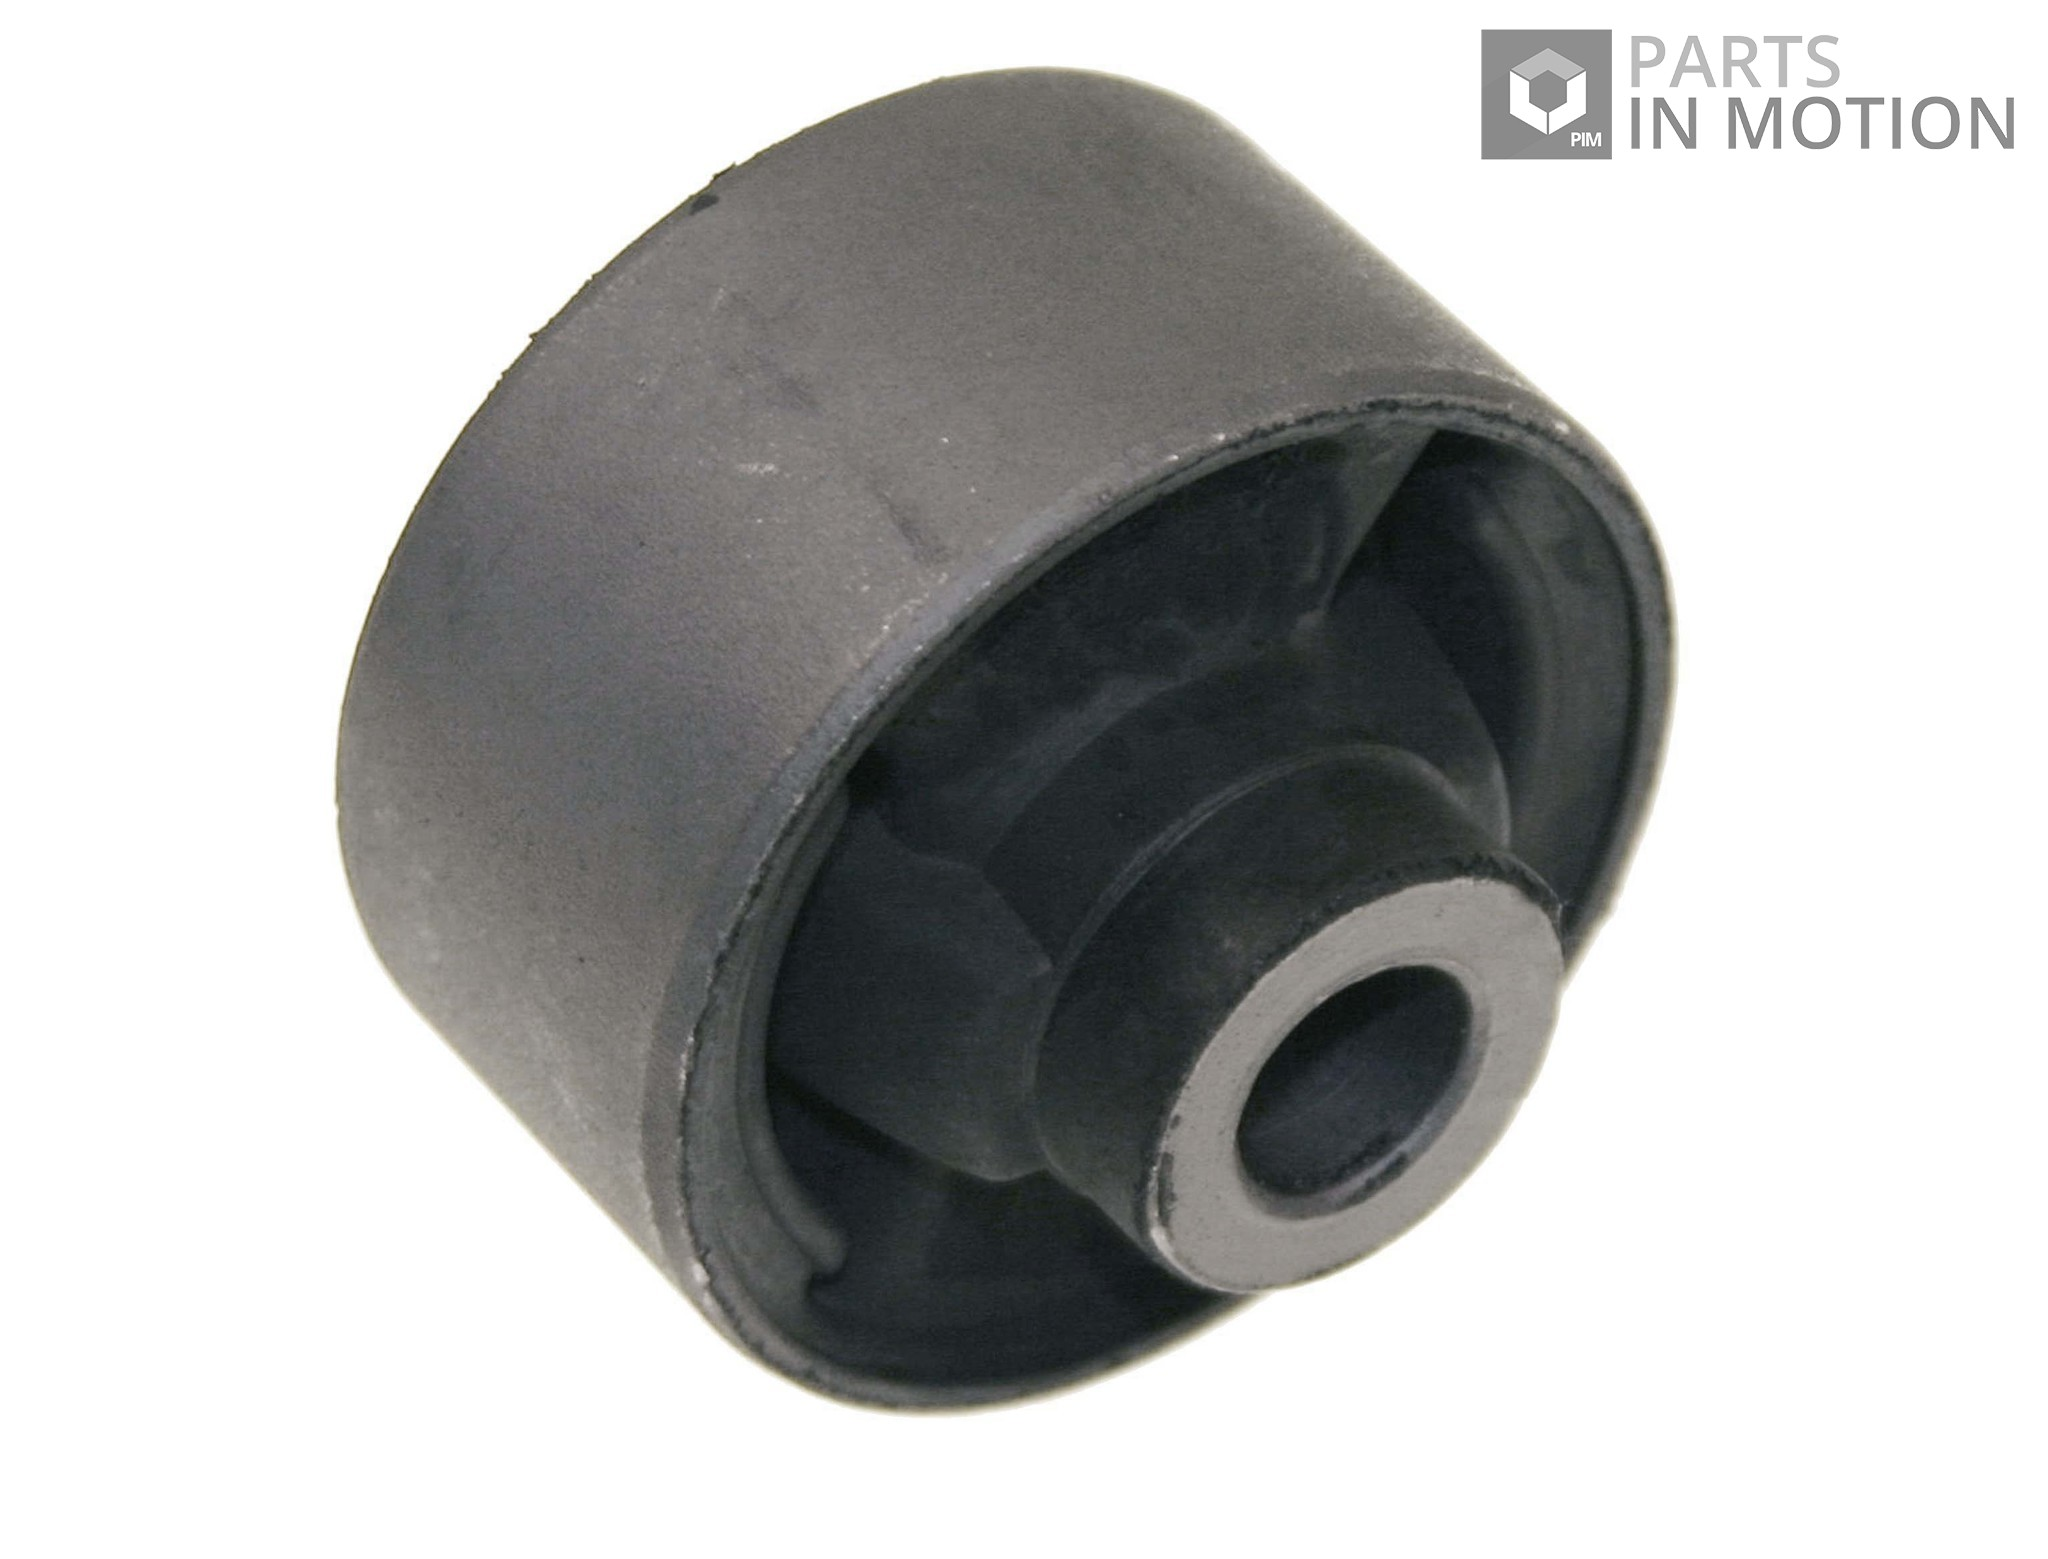 Wishbone / Control / Trailing Arm Bush Front Lower, Left or Right ADH28074 New